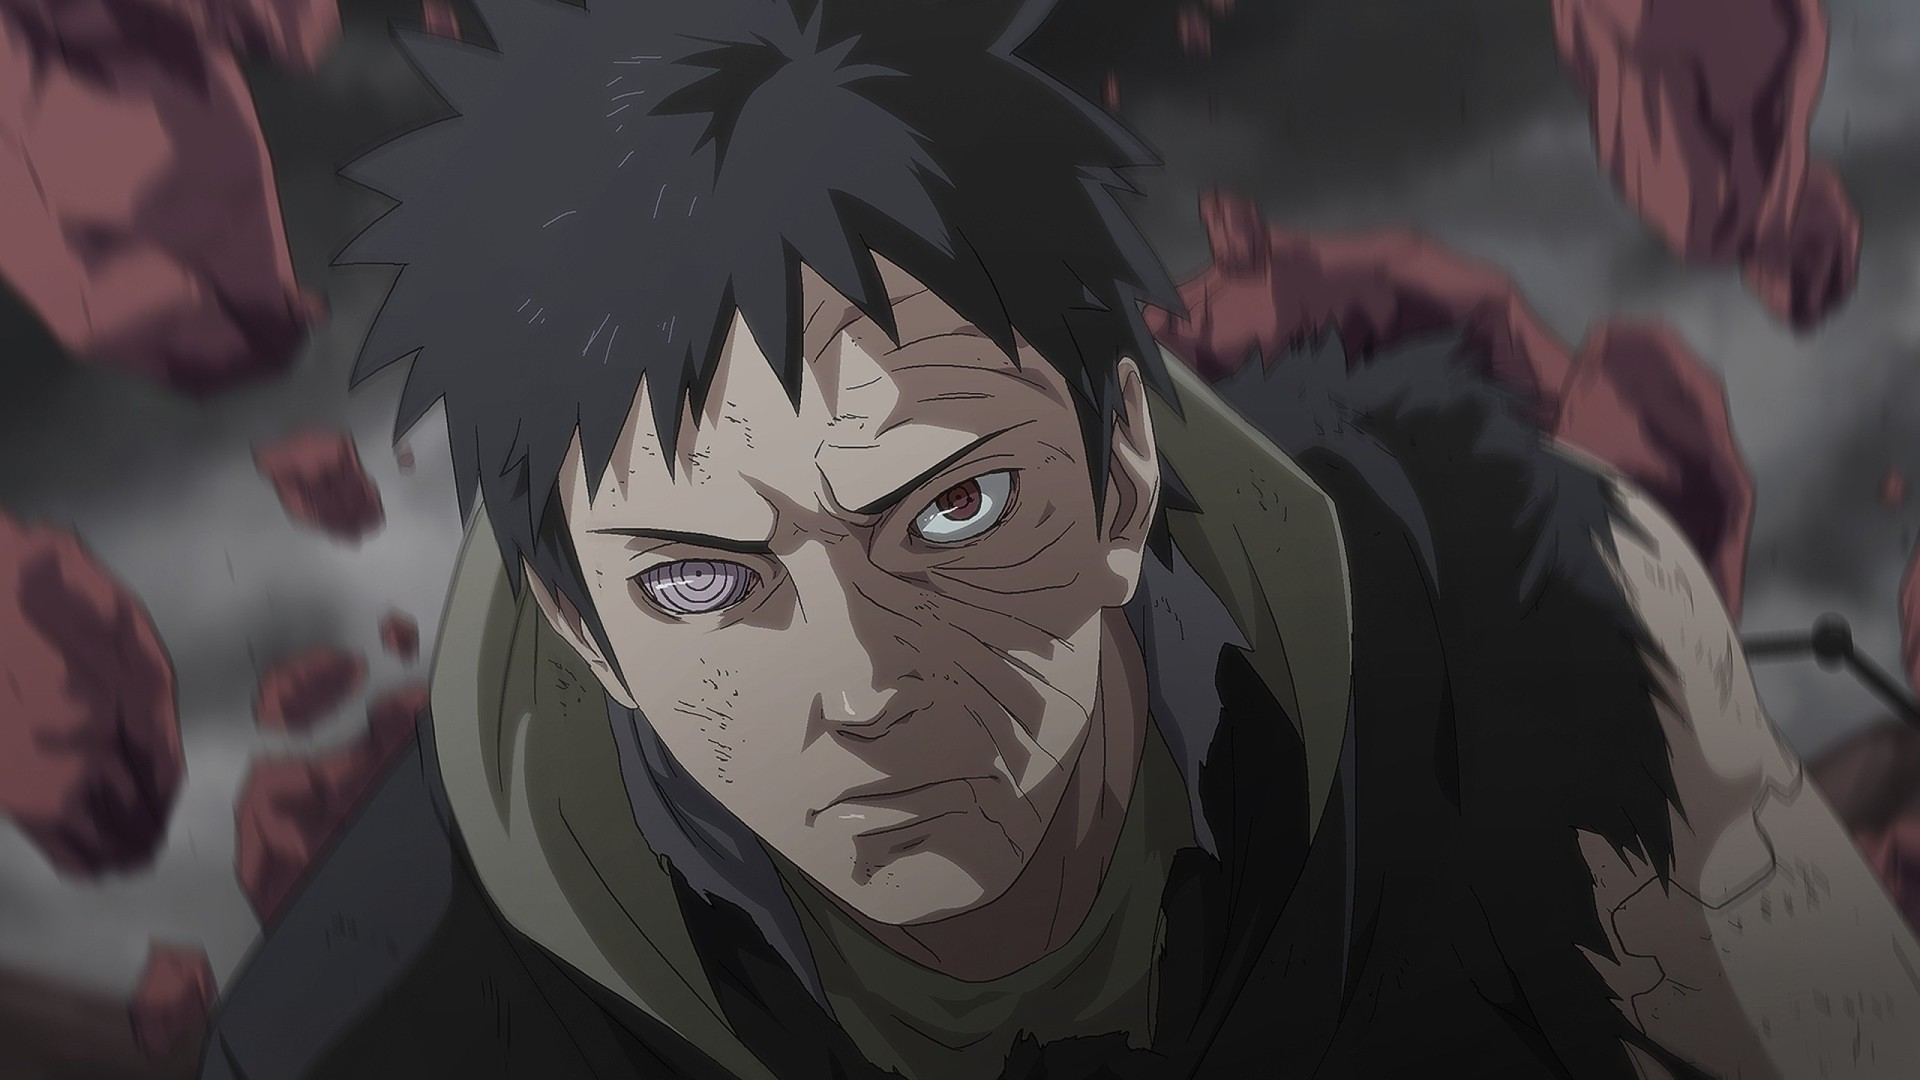 Obito Uchiha   obito uchiha Wallpaper 36892451 1920x1080